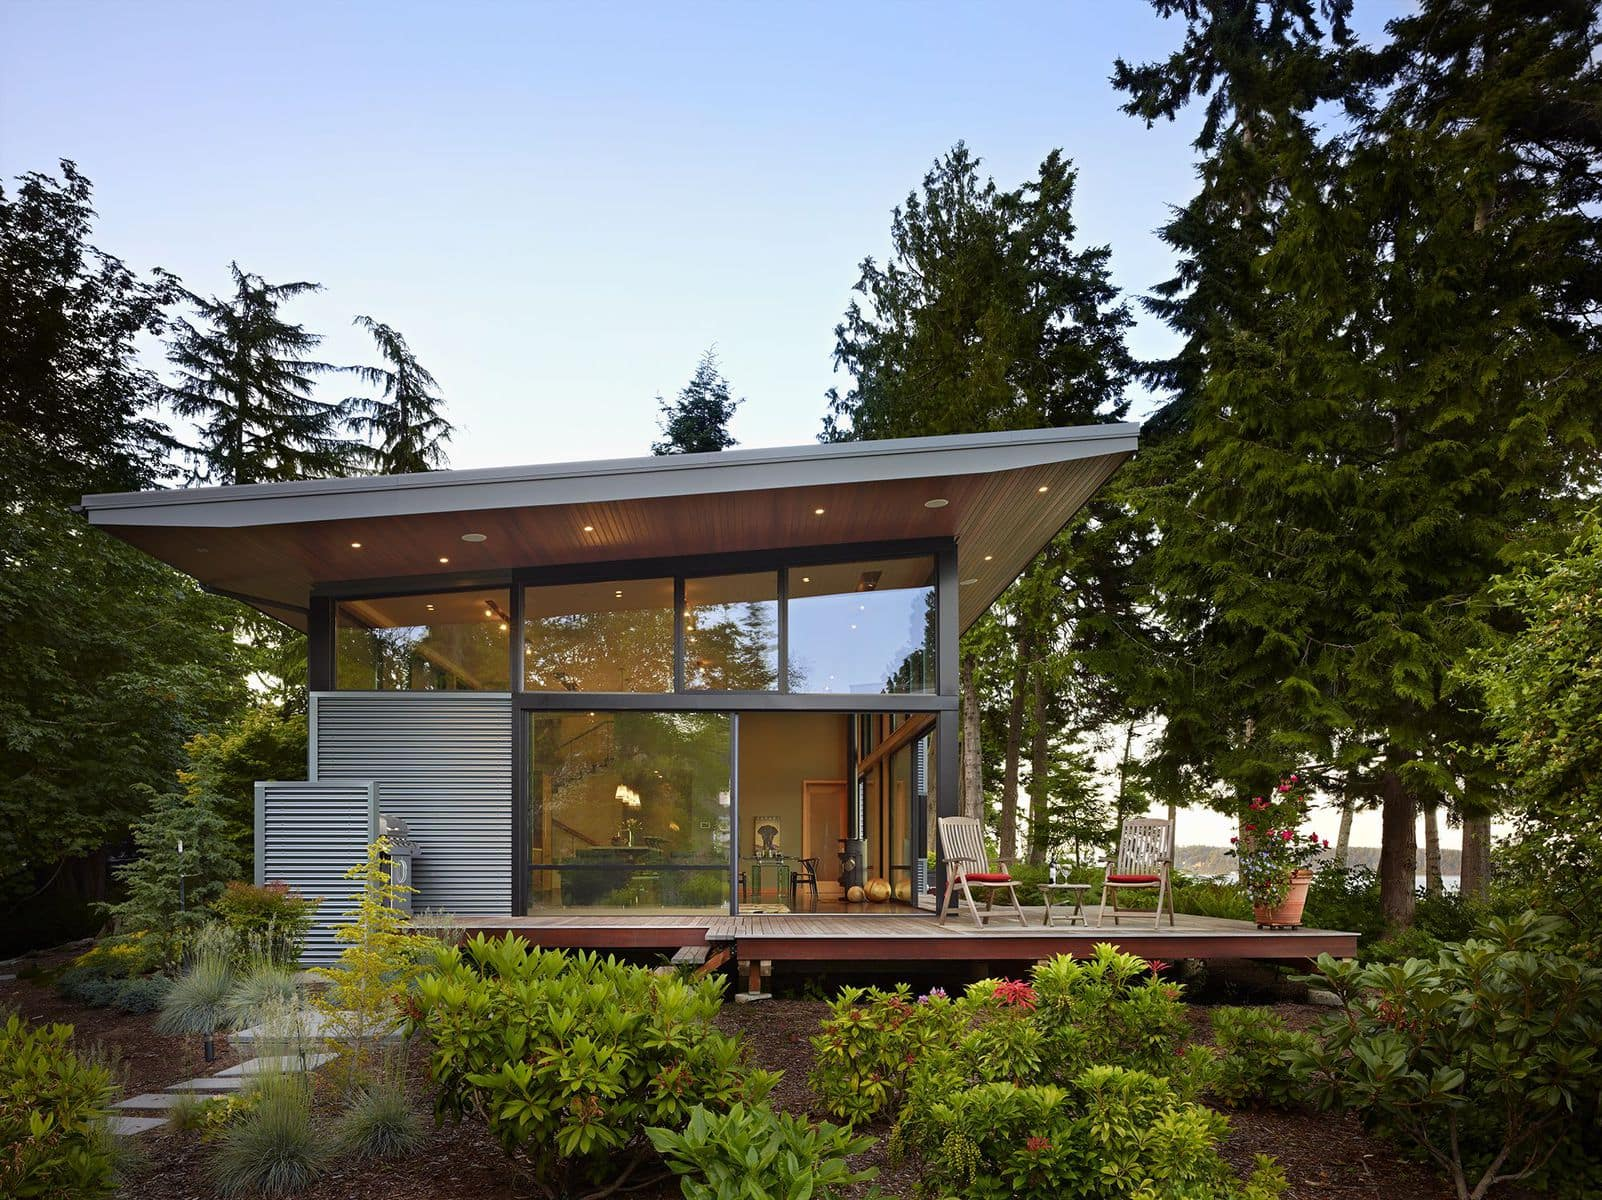 PORT LUDLOW: A sustainable residence by FINNE Architects.